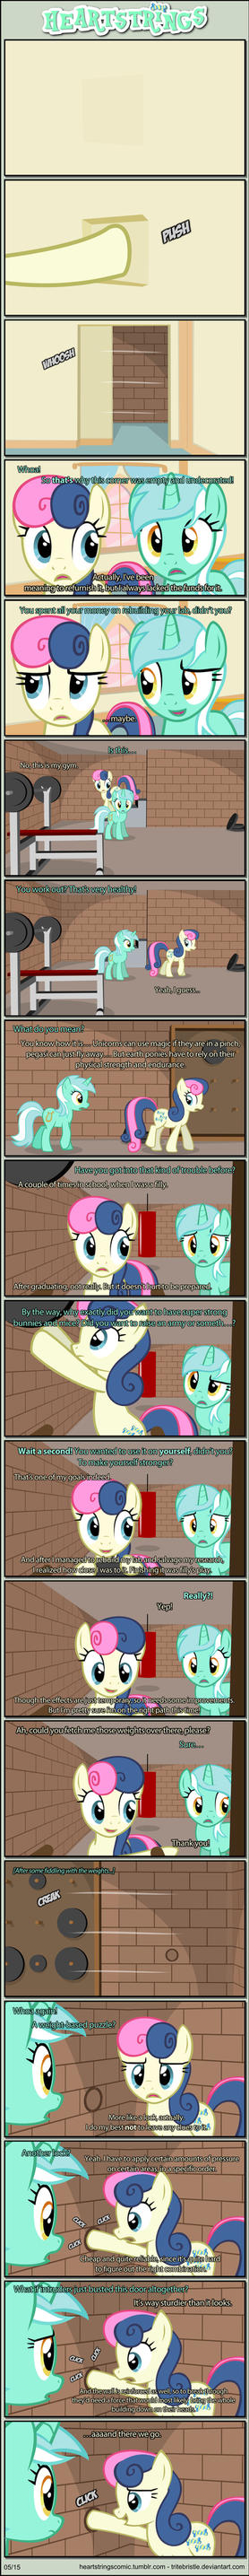 Heartstrings ch5/p15 - Puzzle time by TriteBristle